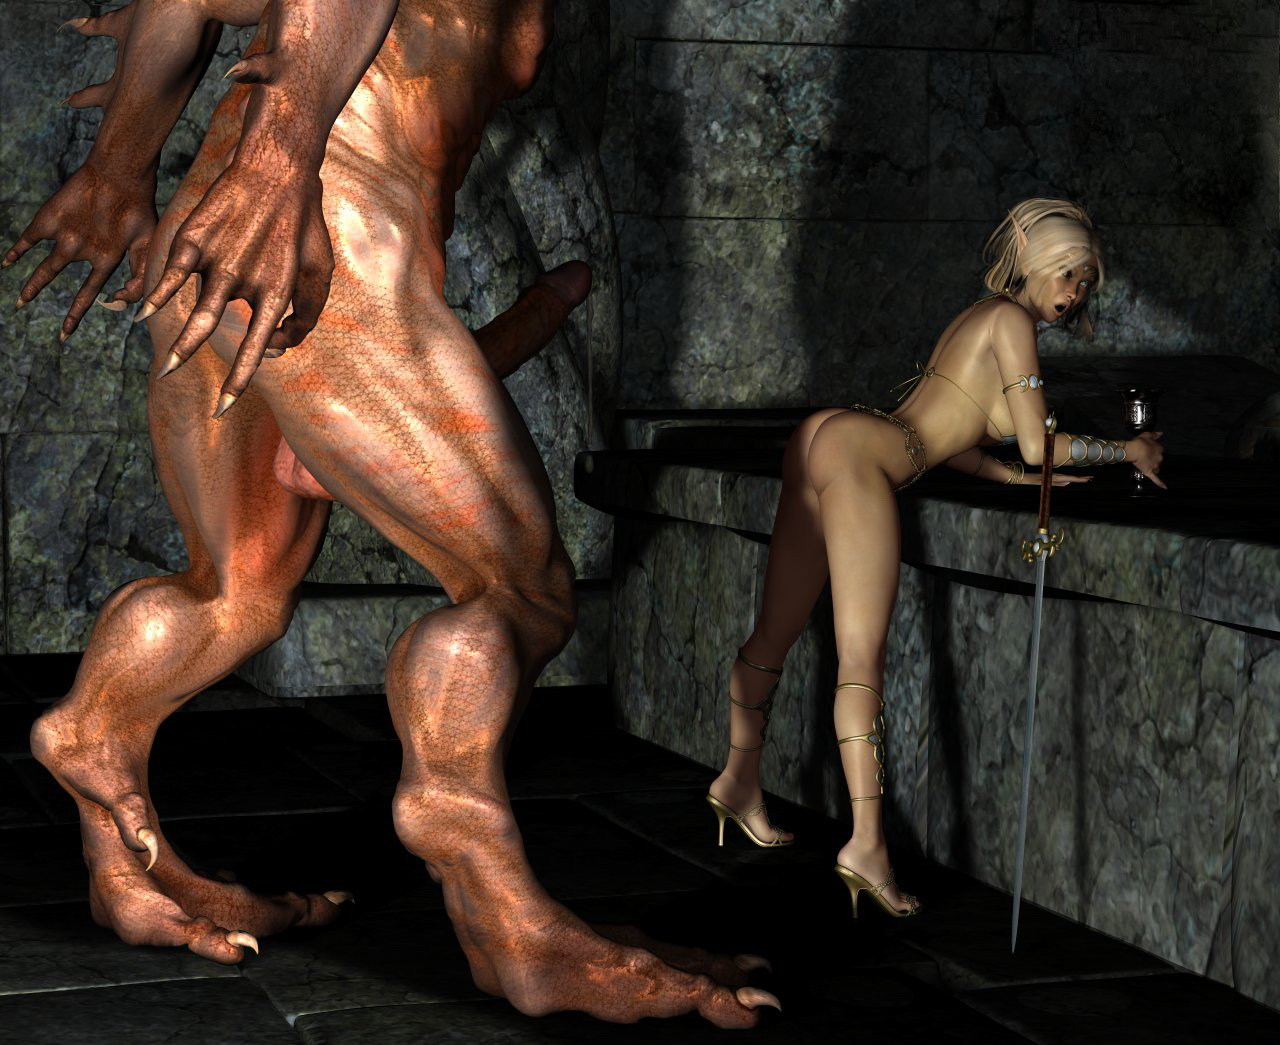 3d sex galleries: